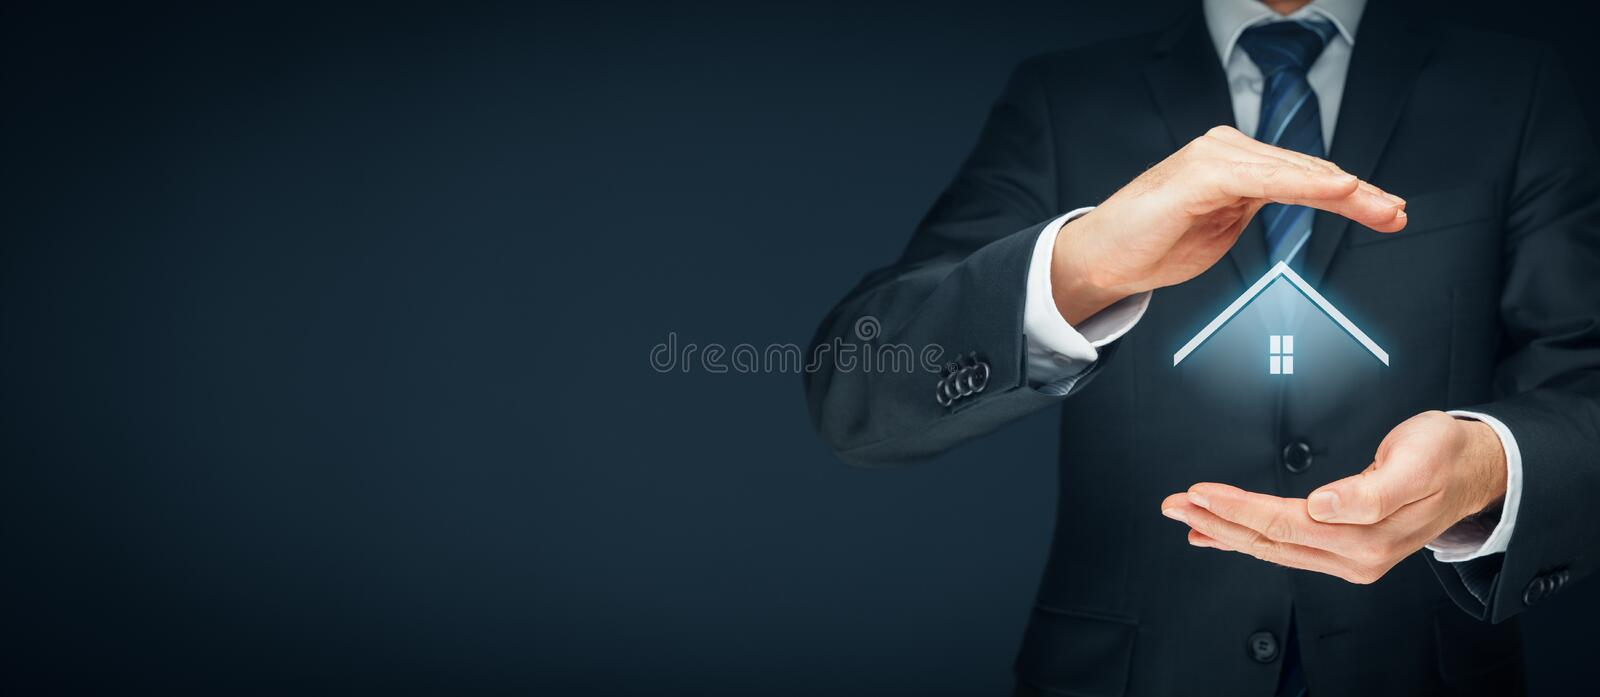 Real estate agent. Offer house. Property insurance and security concept royalty free stock photos